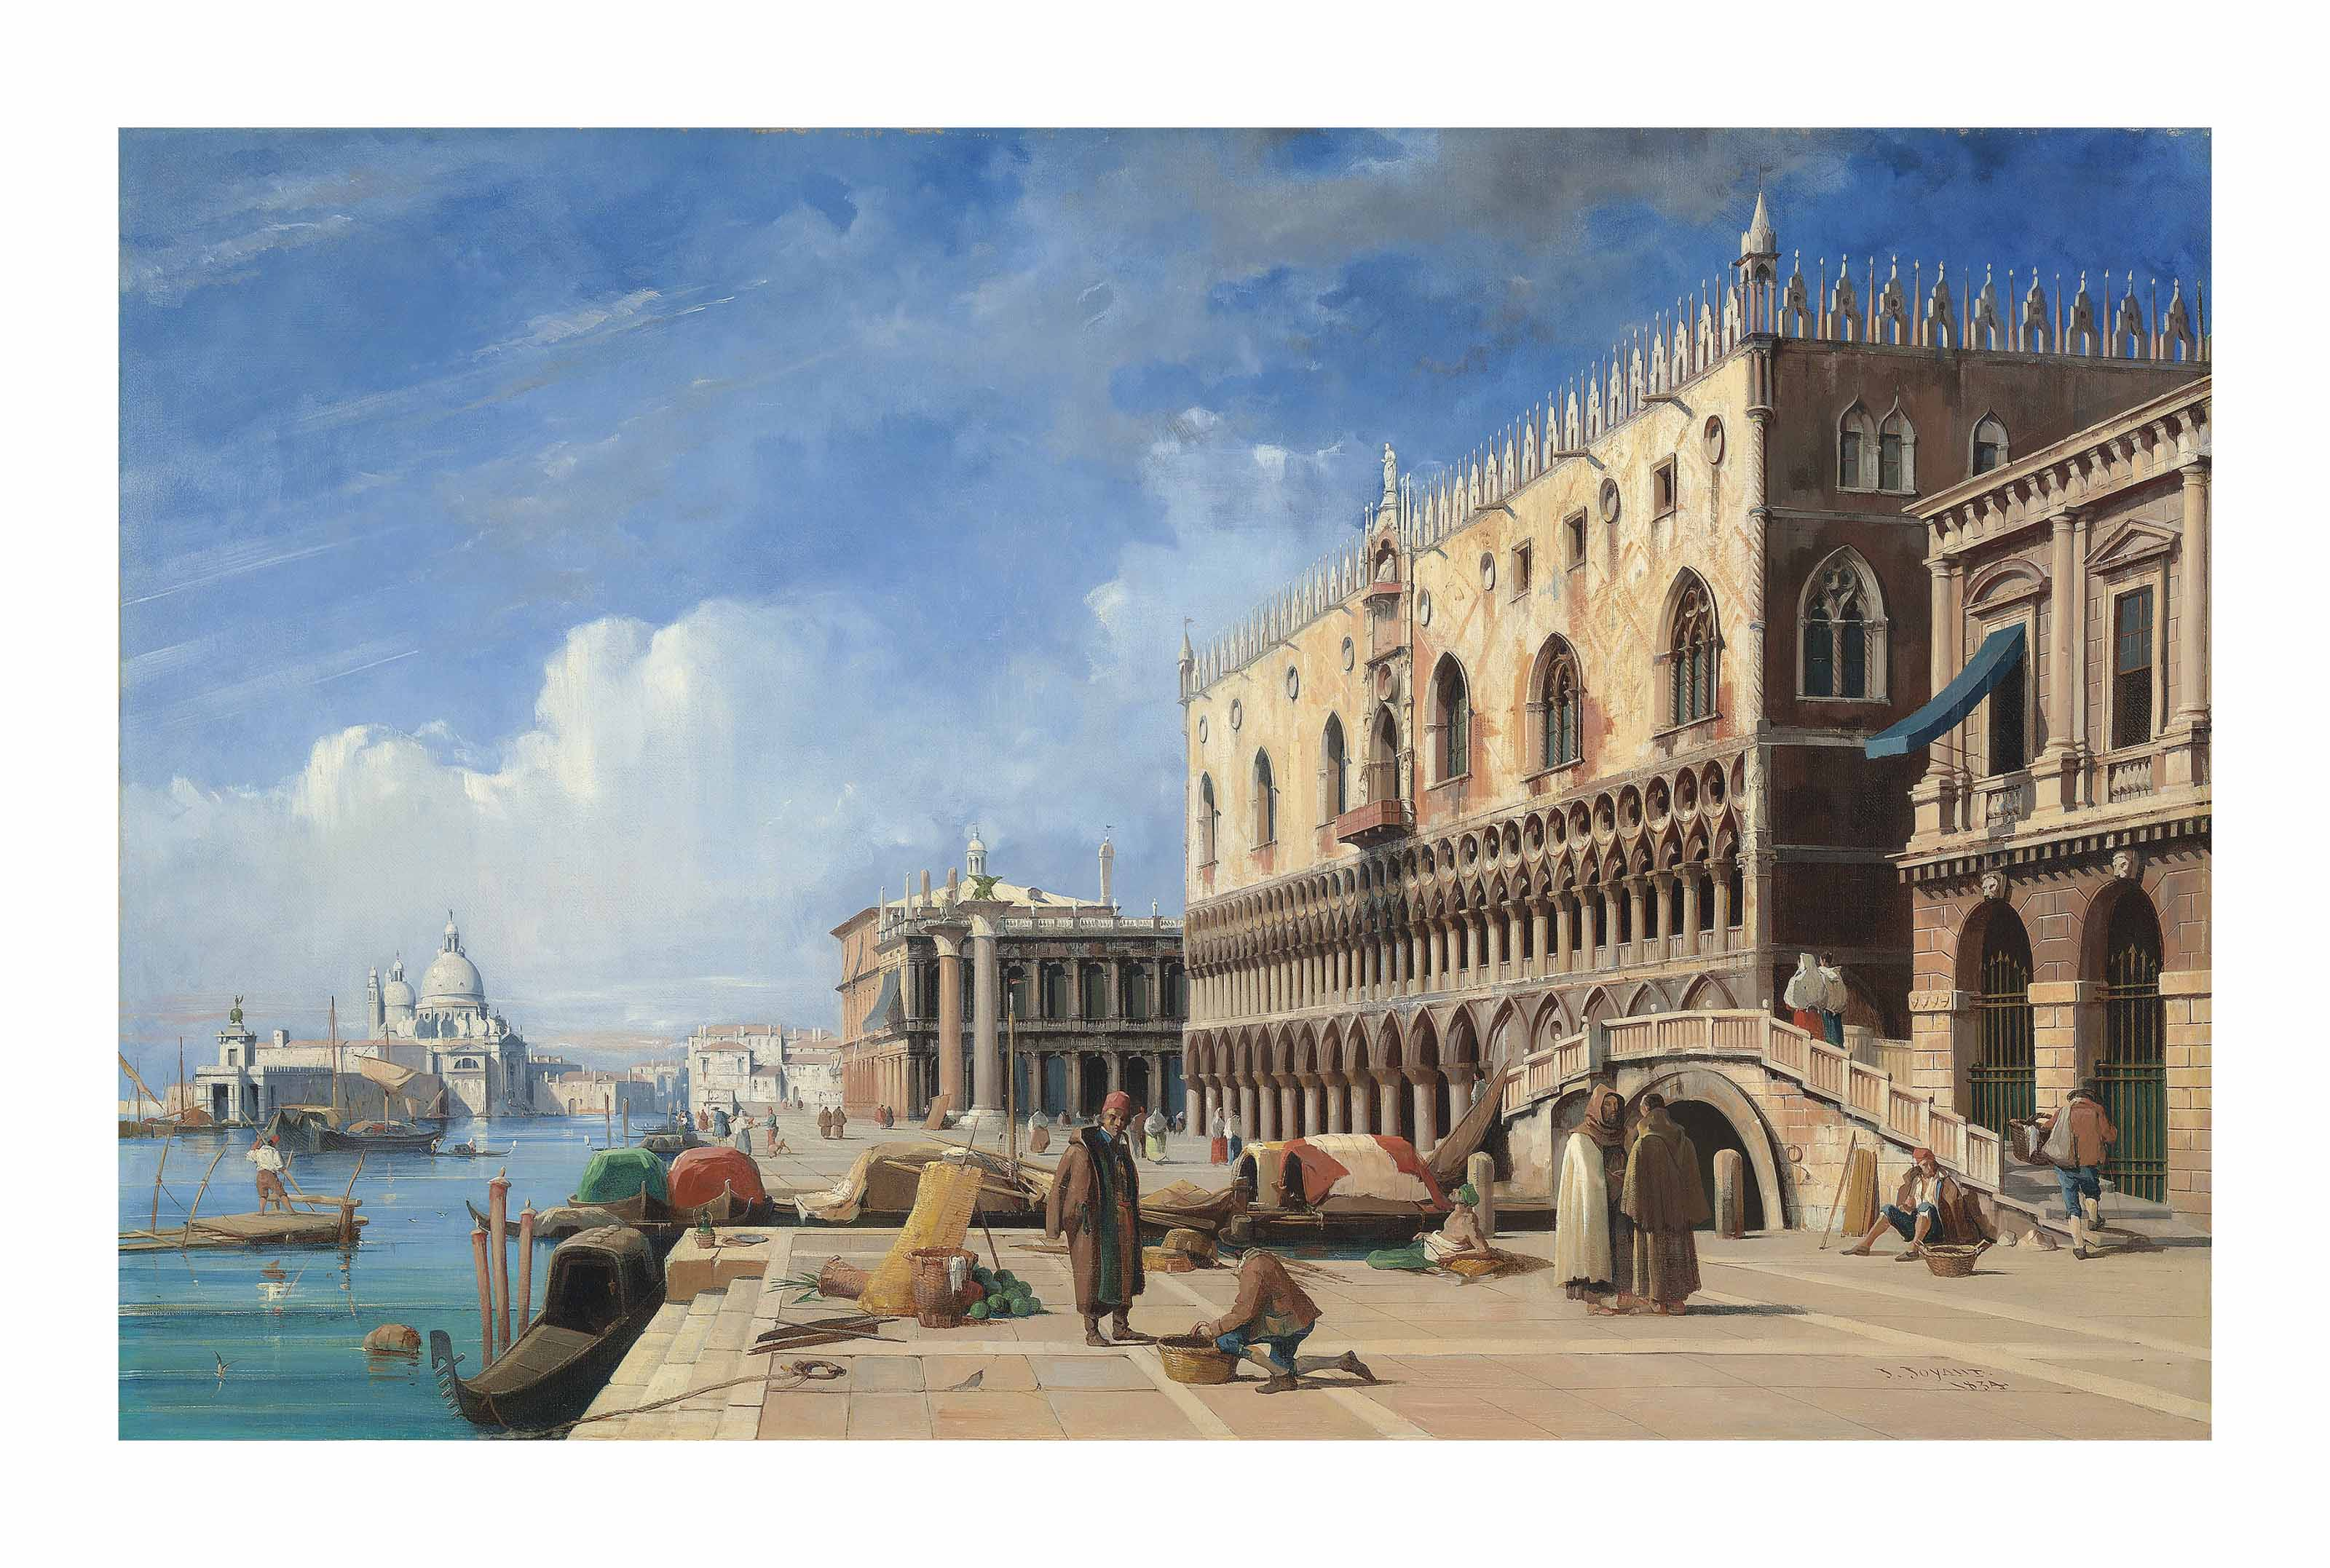 The Riva degli Schiavoni with the Doge's Palace, the Piazzetta and Santa Maria della Salute, Venice